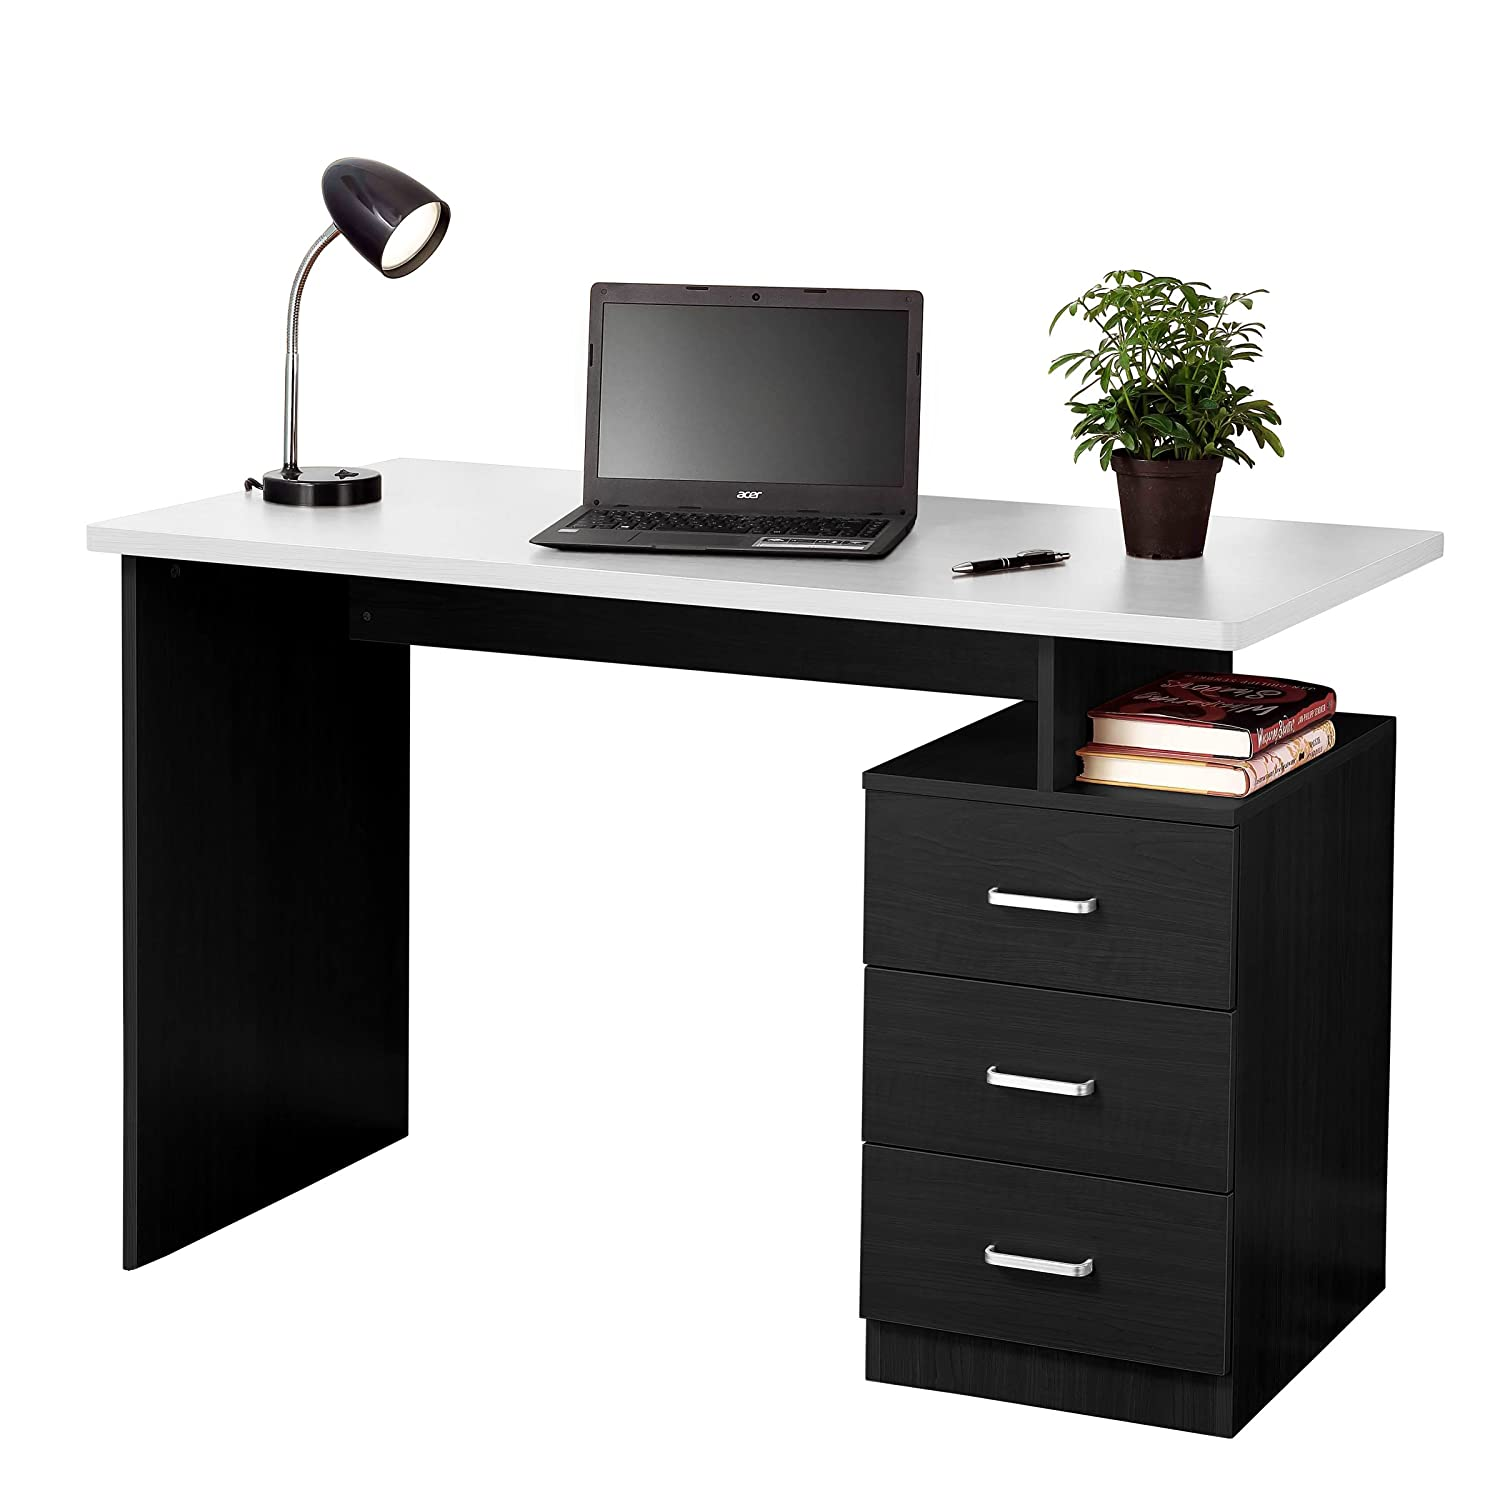 table shaped cozy of cheap the fice line inspiring puter simple elegant awe htpcworks l top home corner desks office desk